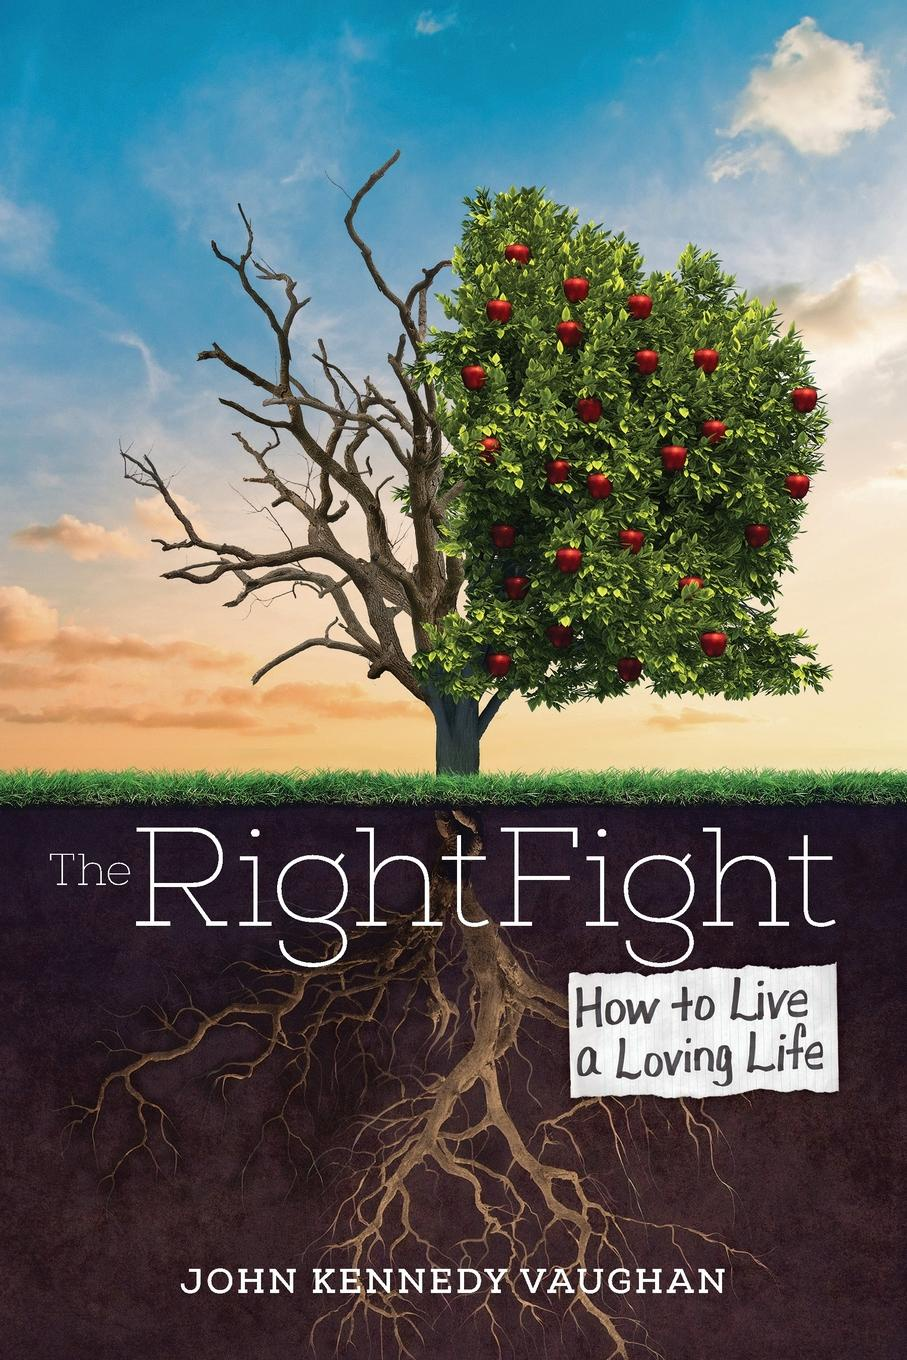 John Kennedy Vaughan The Right Fight. How to Live a Loving Life learning to live the love we promise